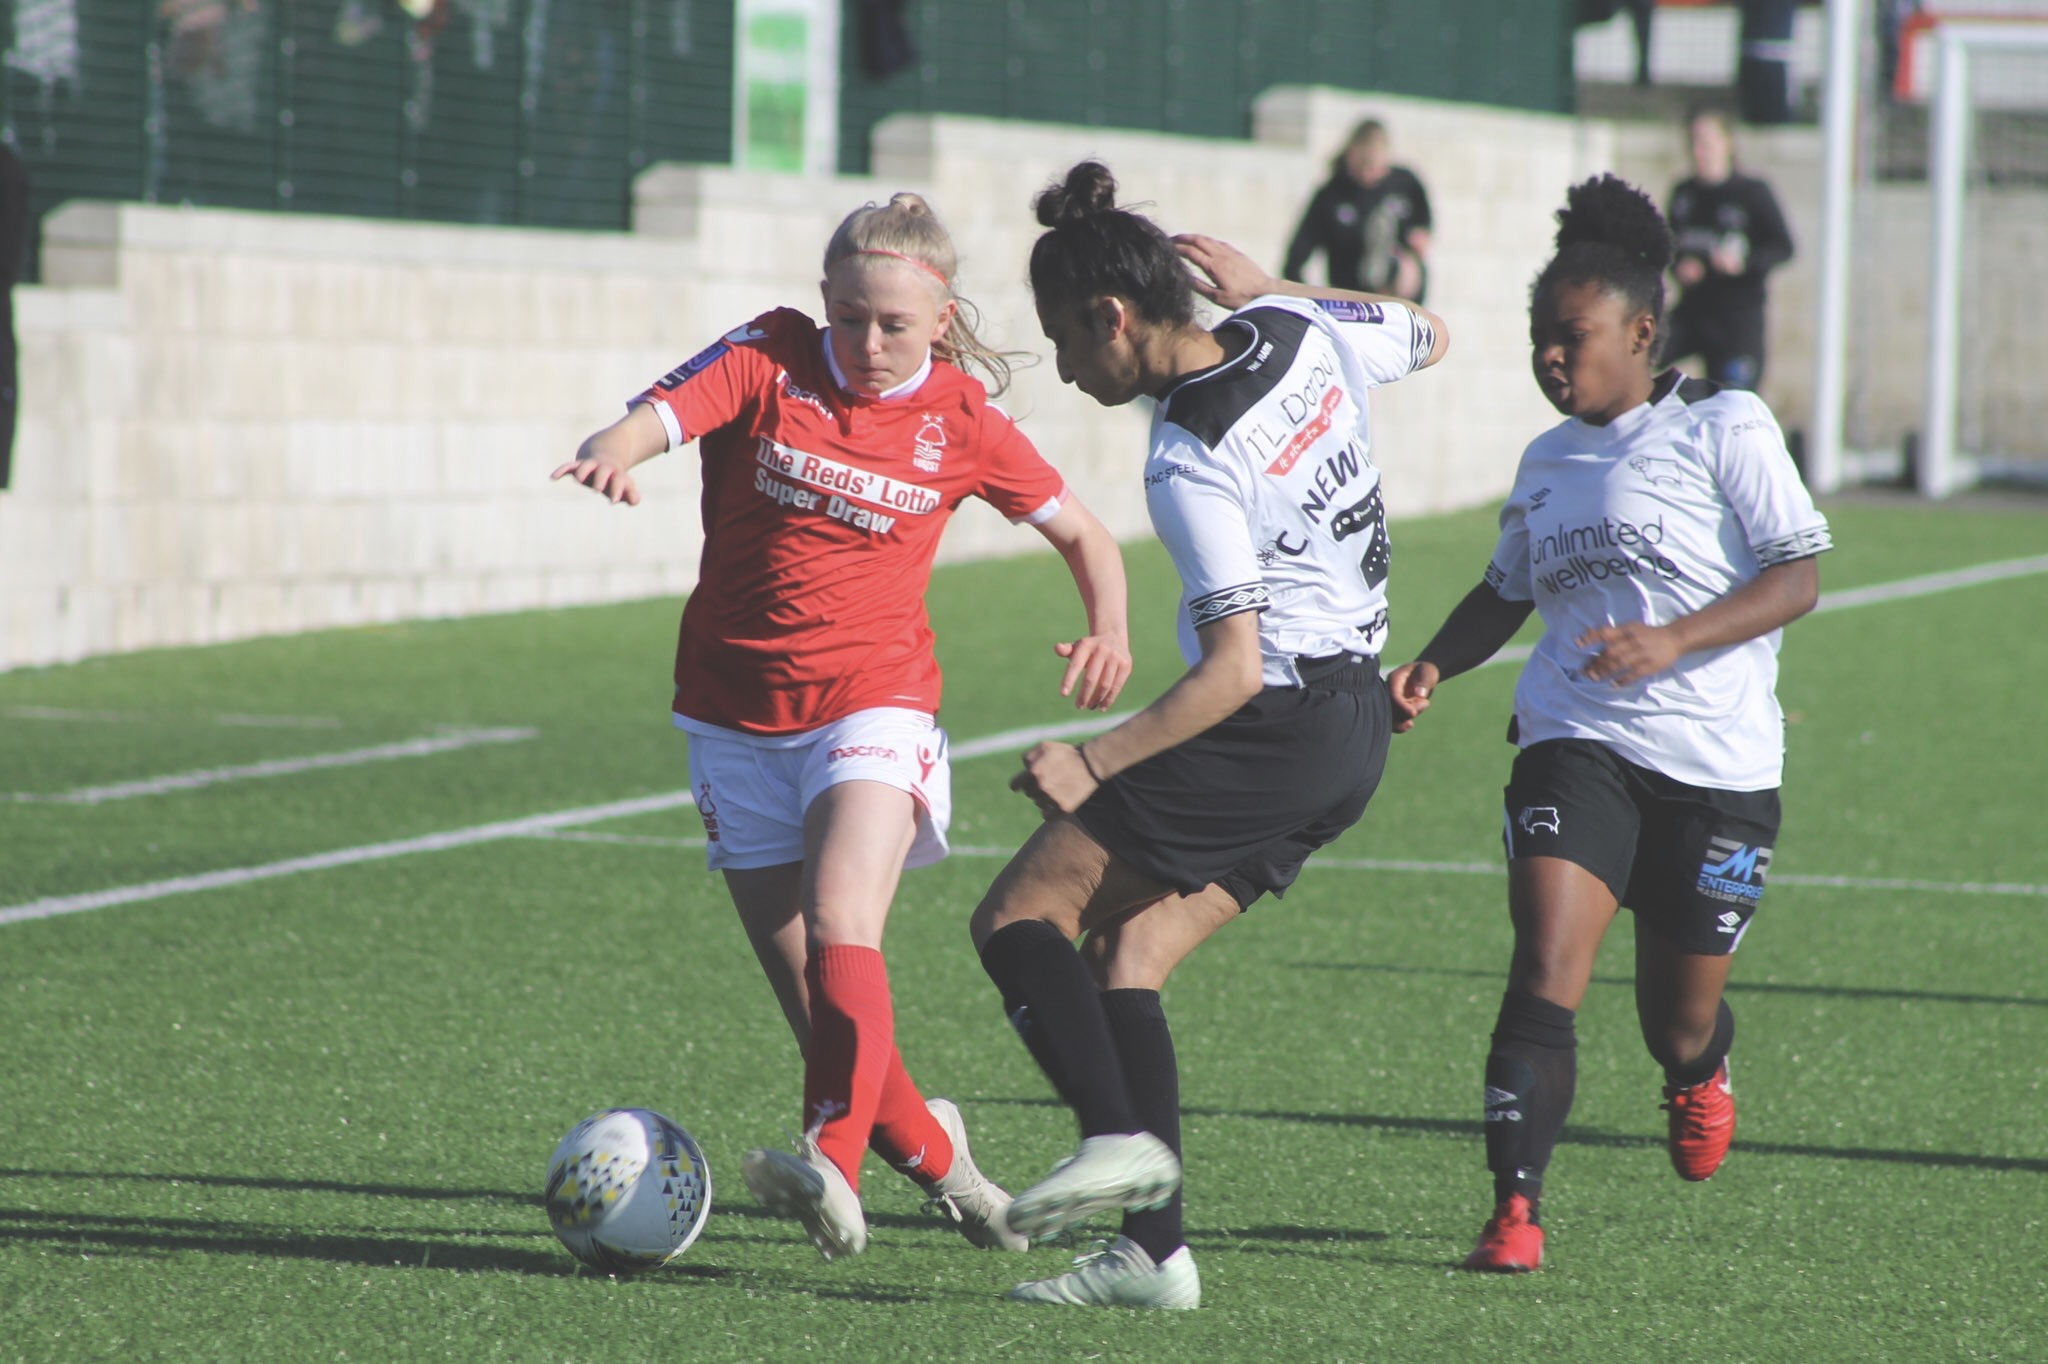 Nottingham Forest Ladies 1-1 Derby County